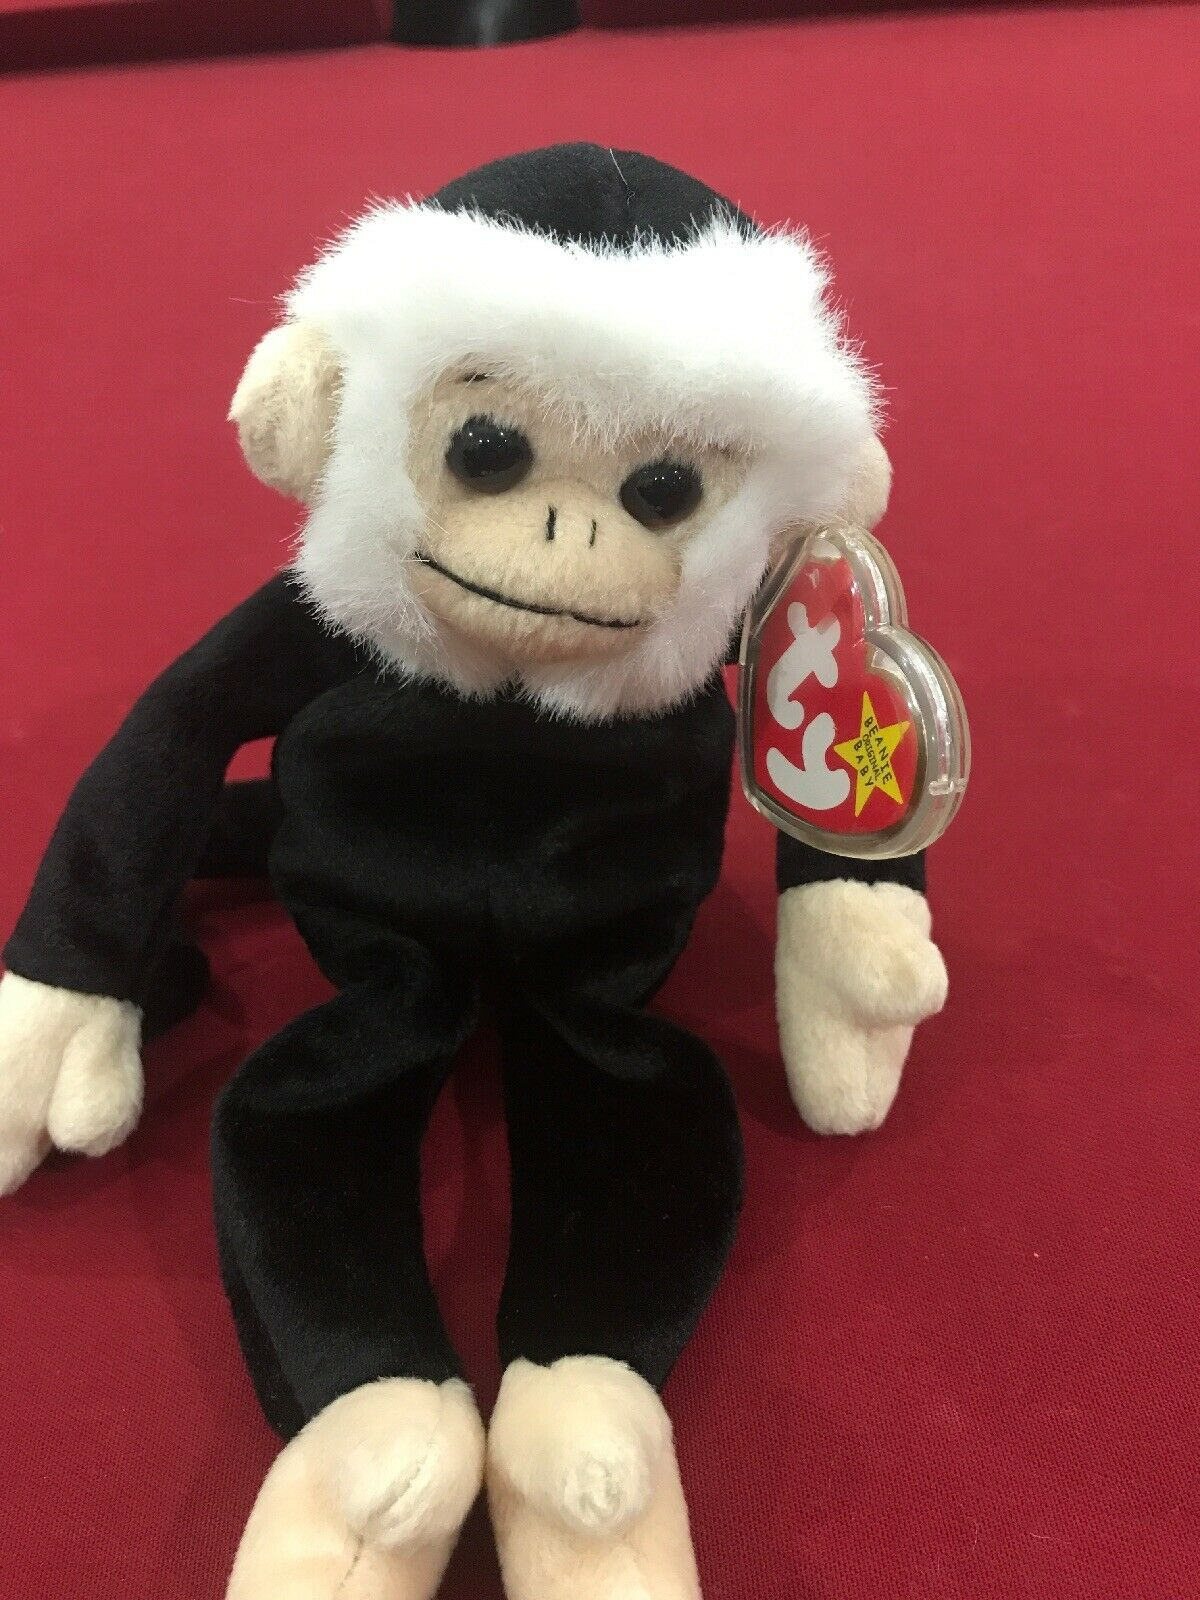 Mooch, Spider Monkey 98 99 Ty Beanie Baby rare retired with errors